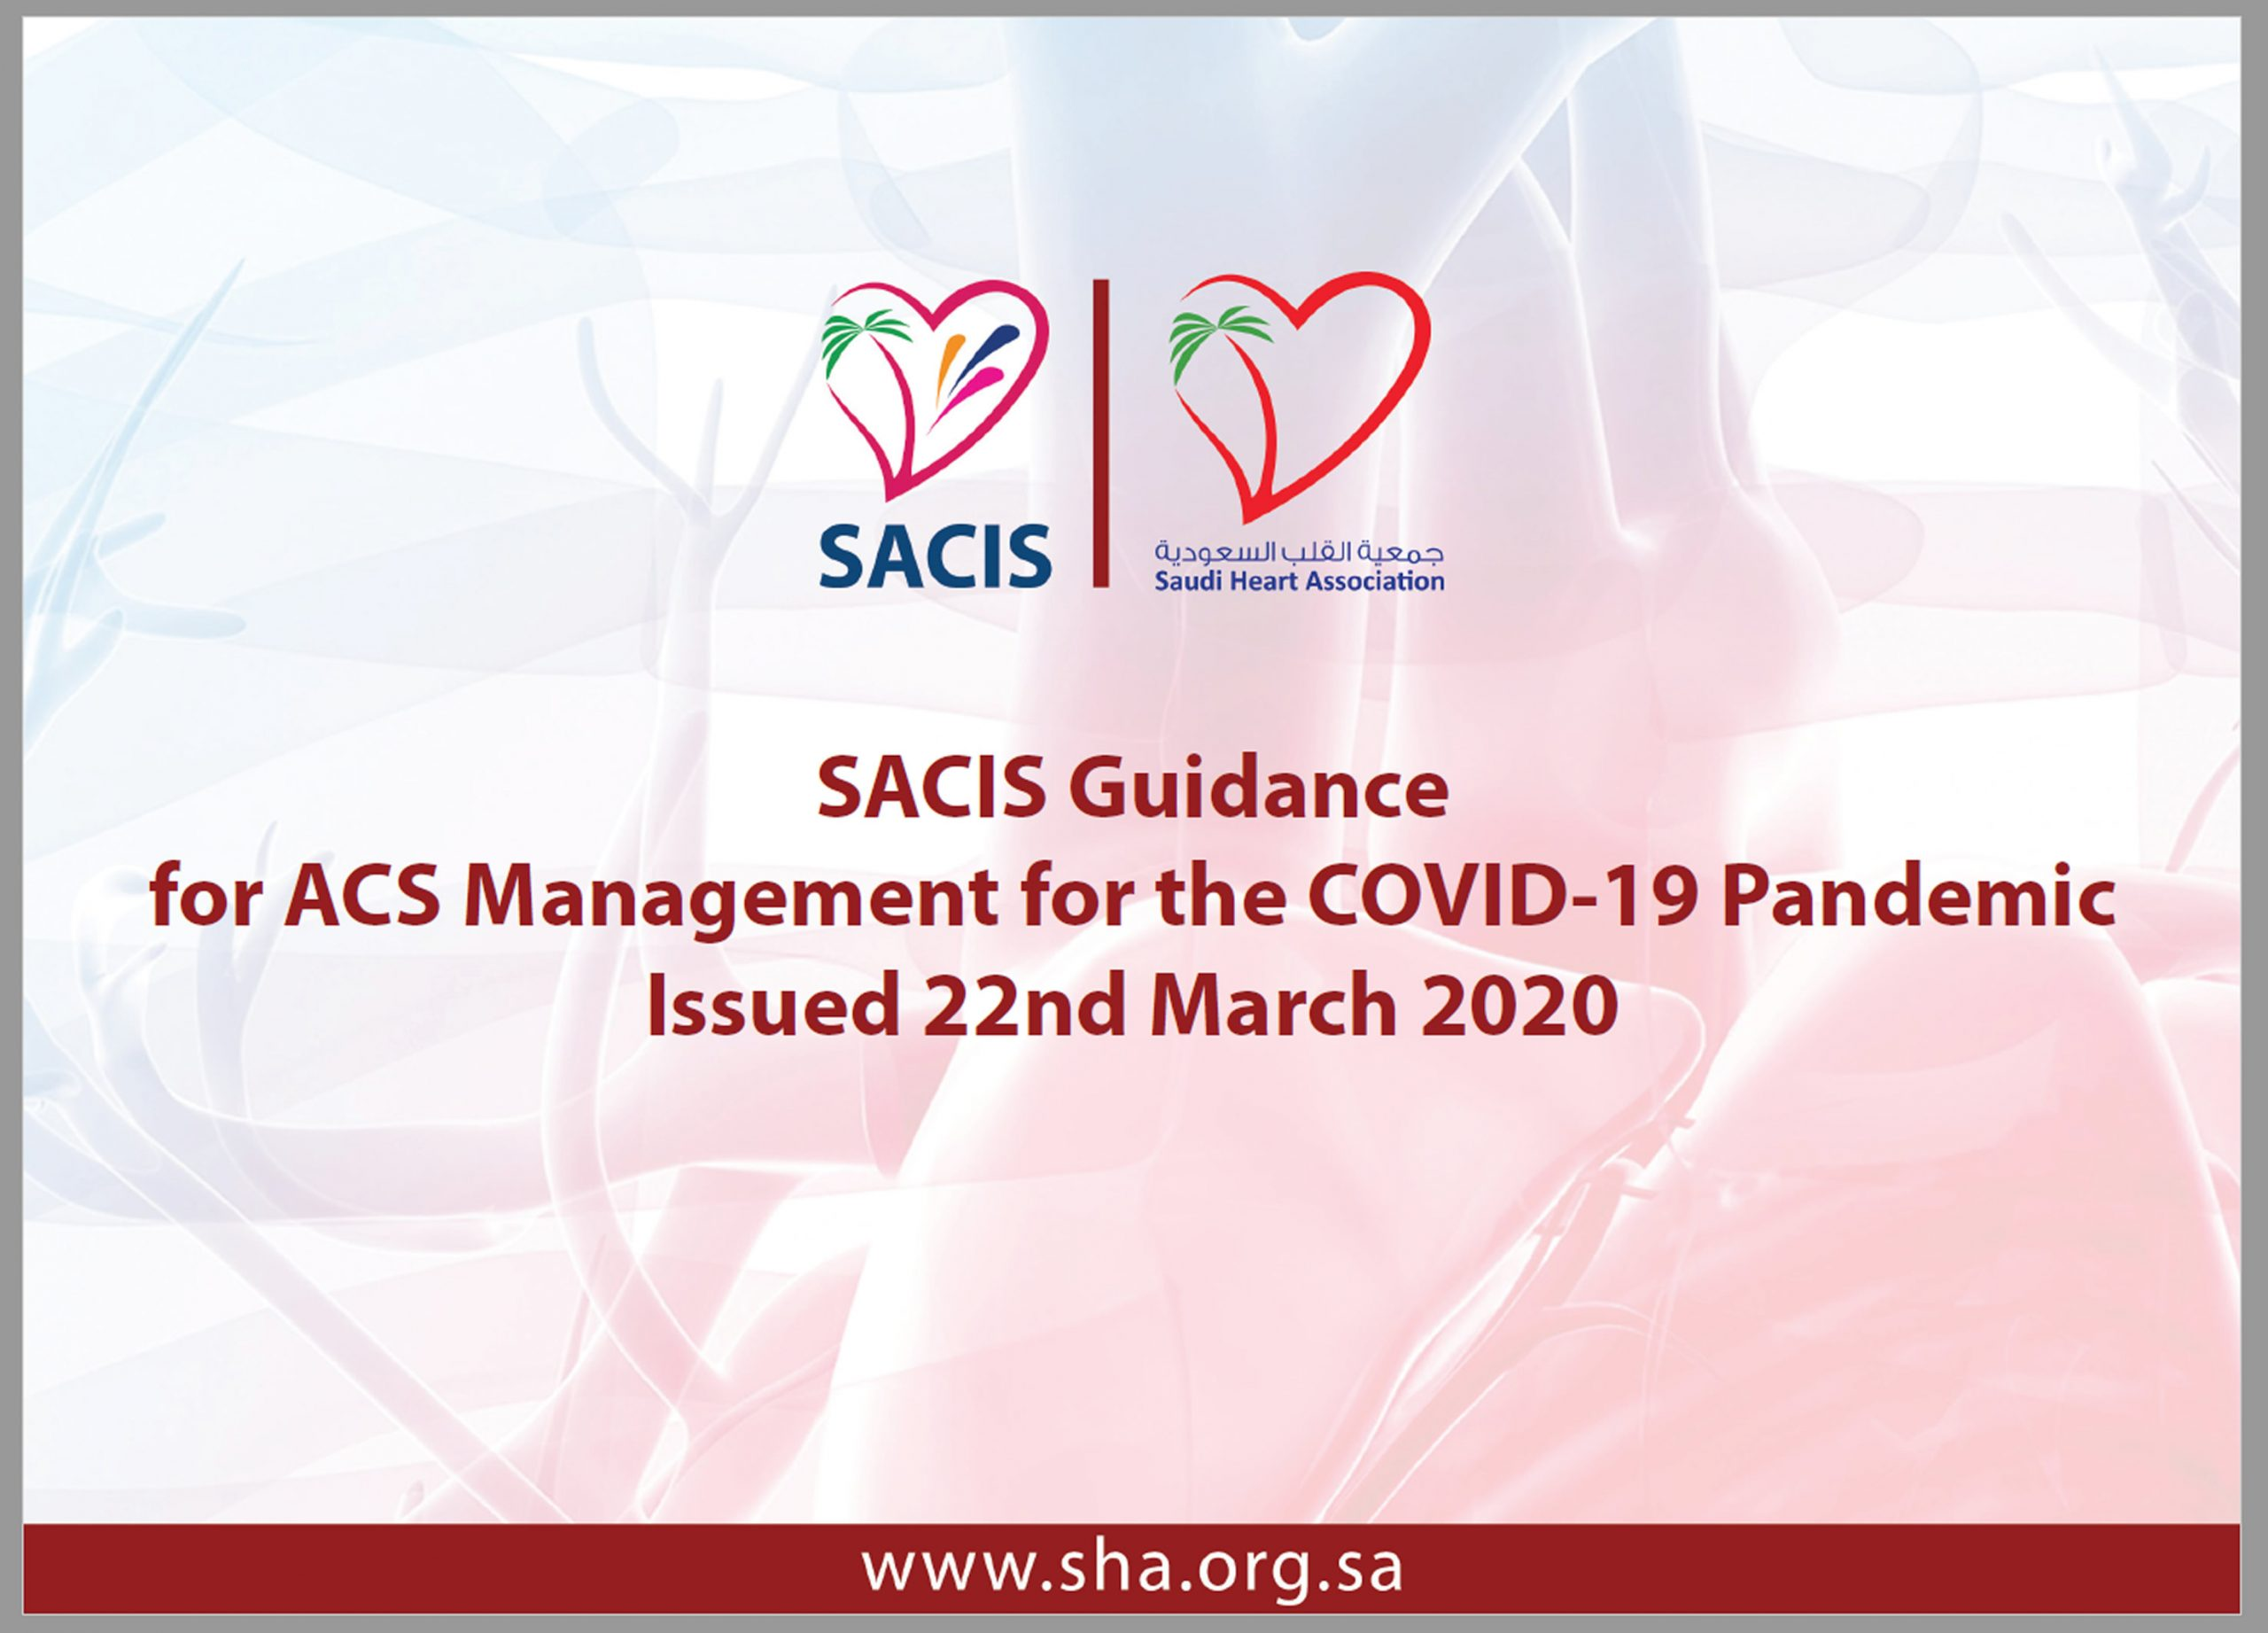 SACIS Guidance for ACS Management for the COVID-19 Pandemic Issued 22nd March 2020